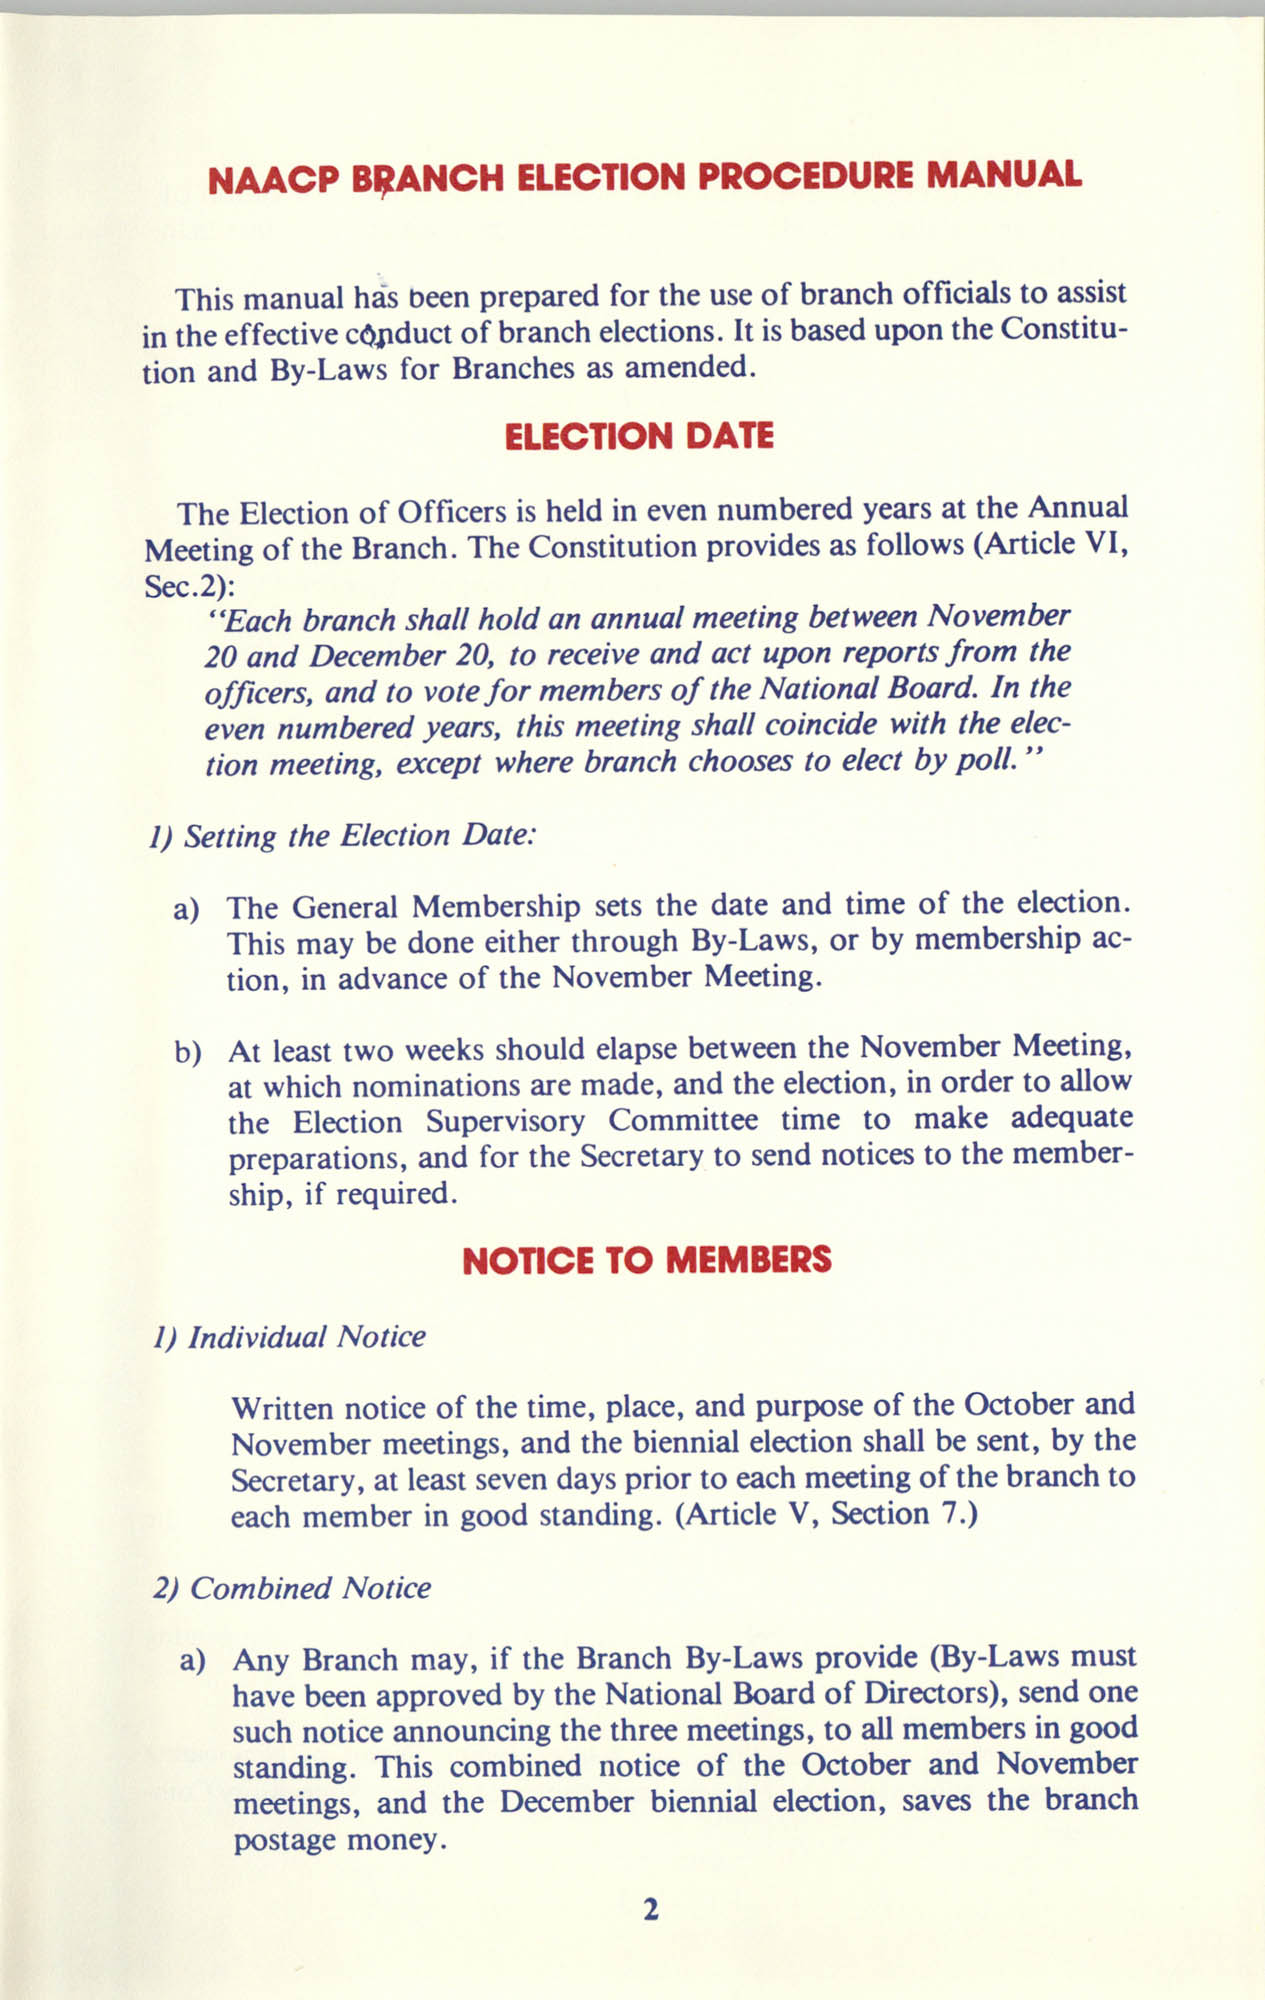 Manual on Branch Election Procedure, Page 2